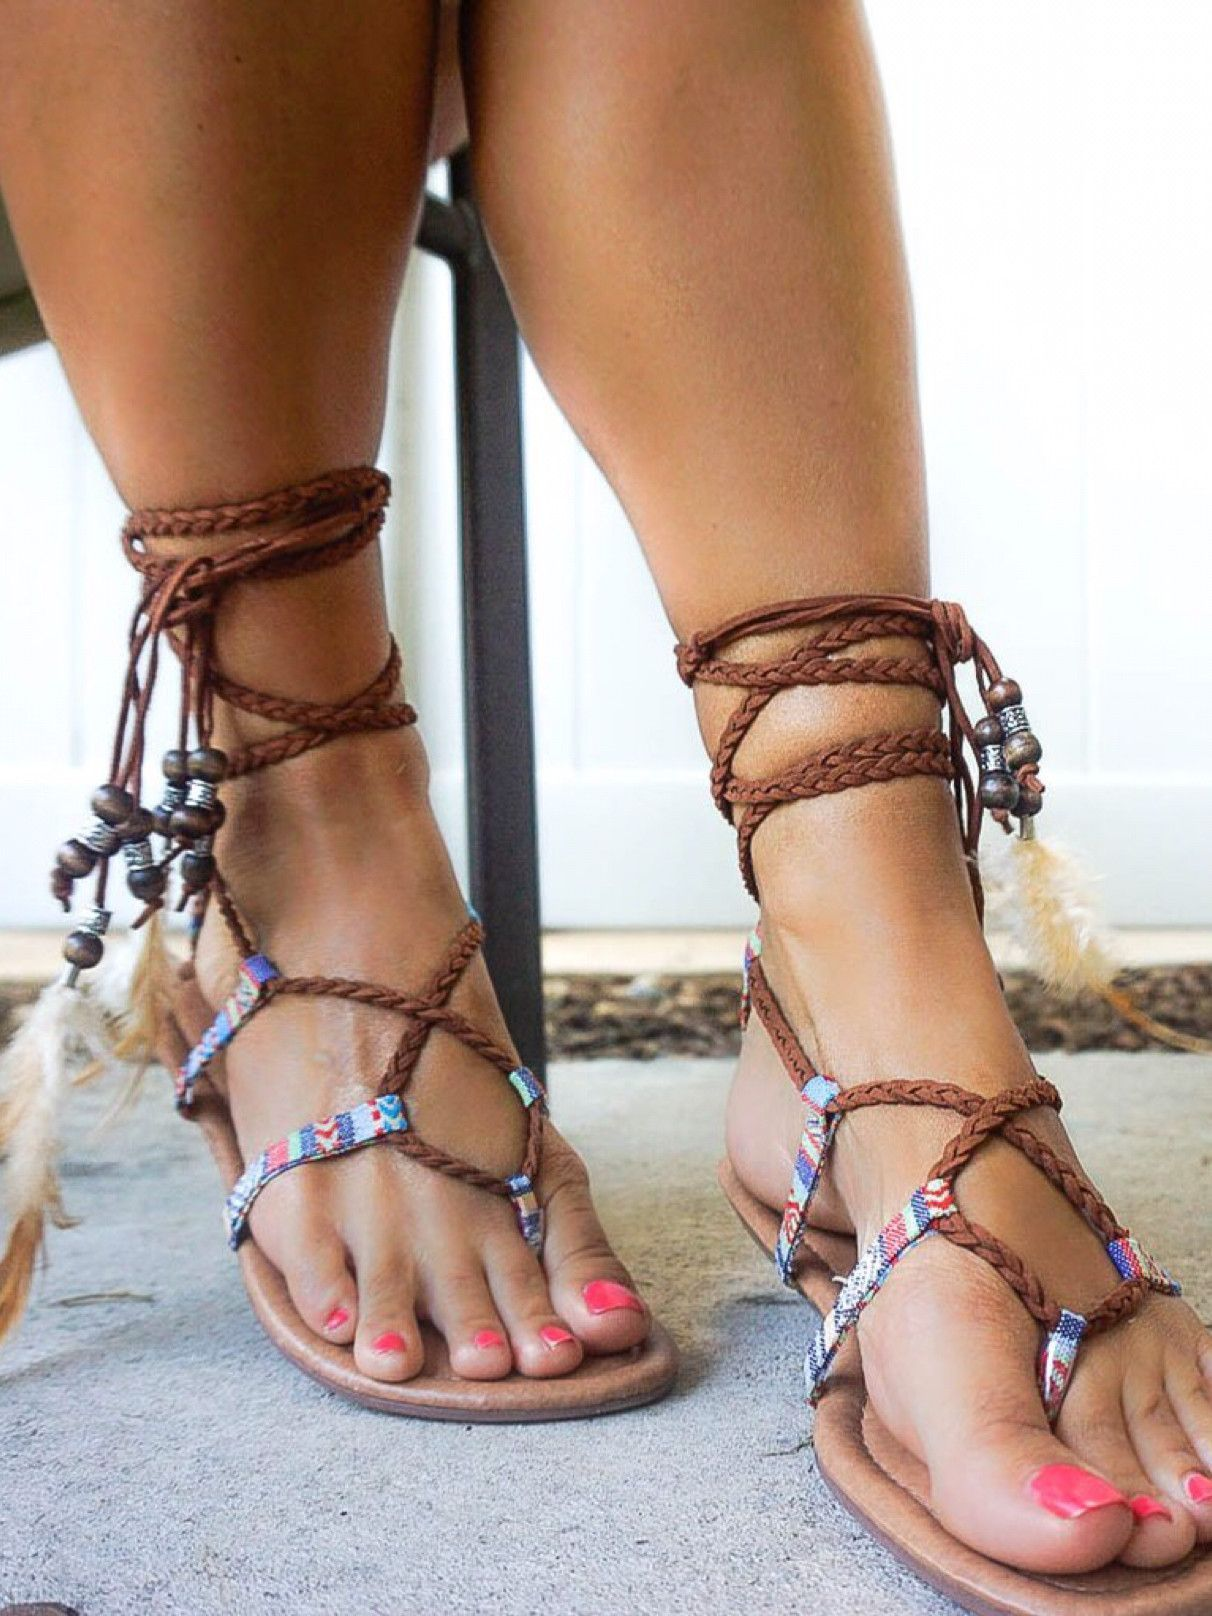 74abbb5f874 Bianca-19 Braided Ankle Tie Up Beaded Flat Gladiator Sandal Boho Chic  Feather